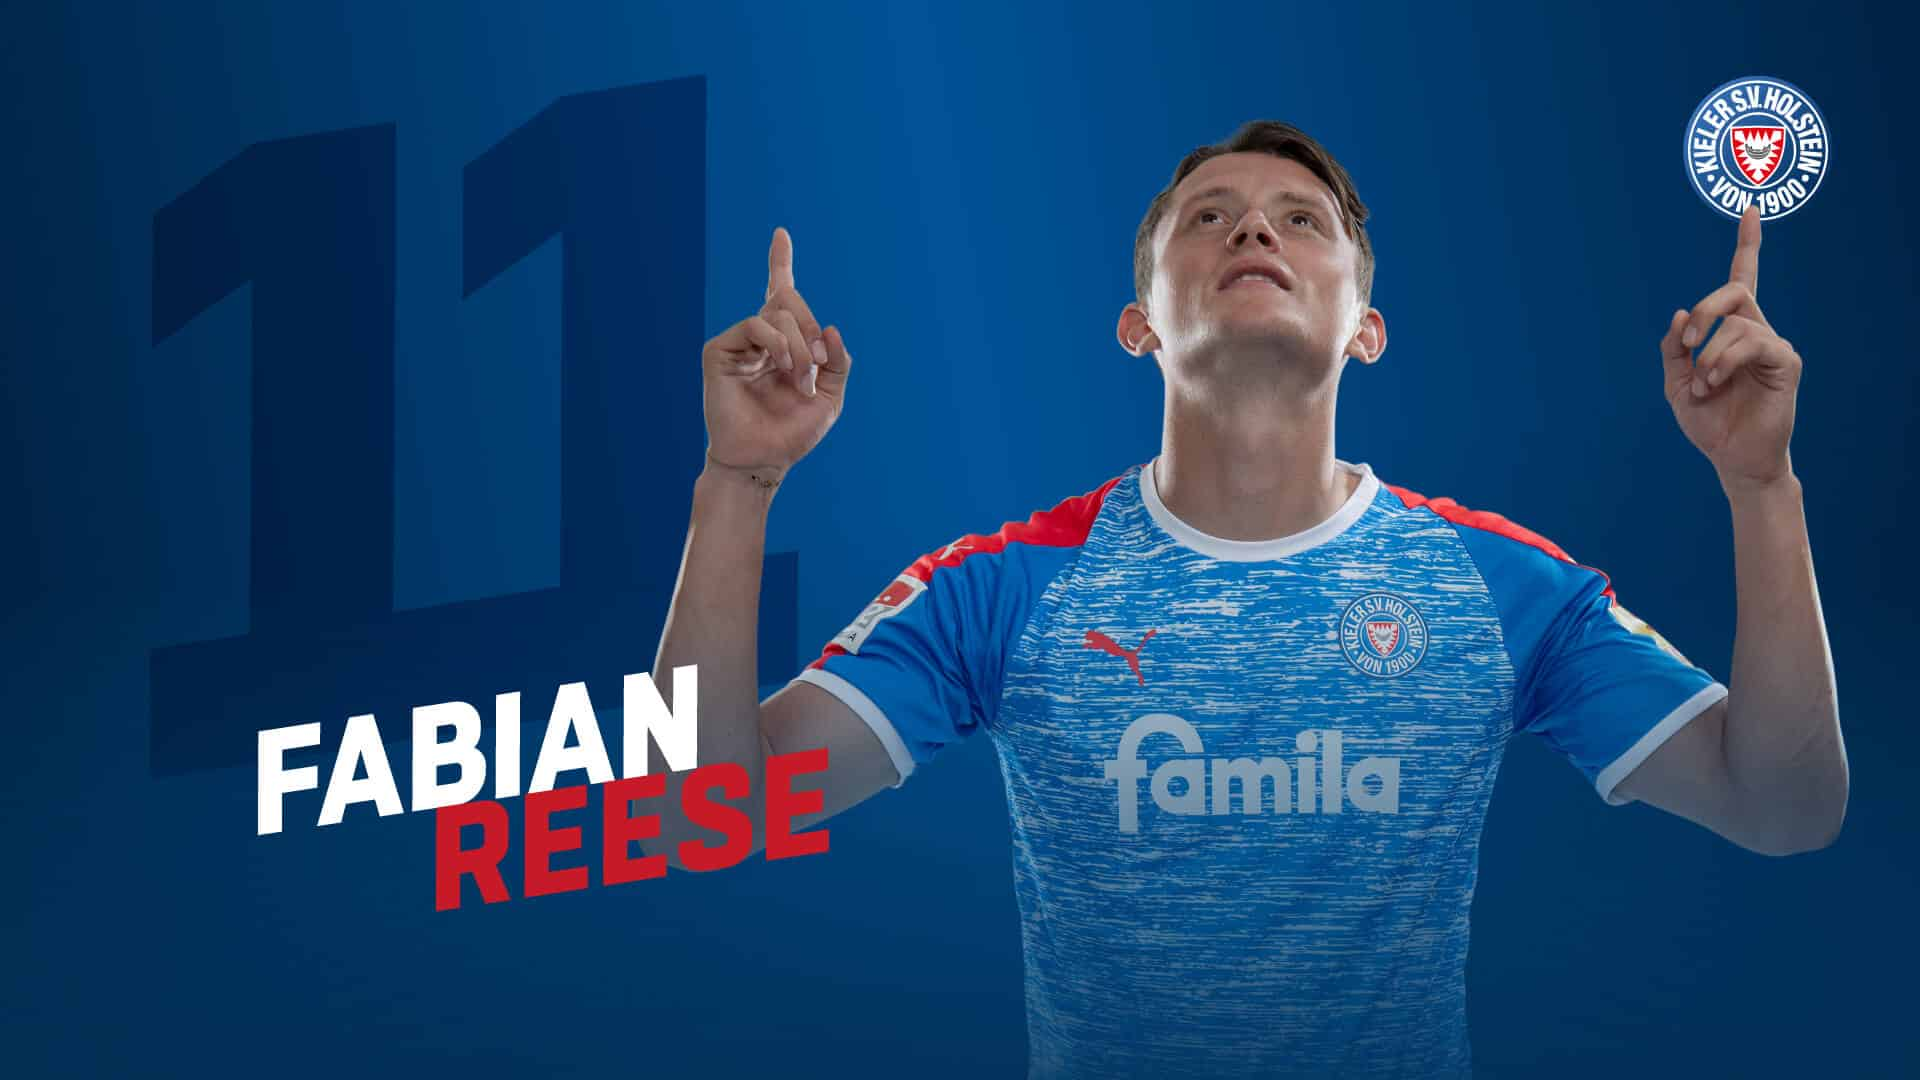 Fabian Reese Wallpaper Desktop